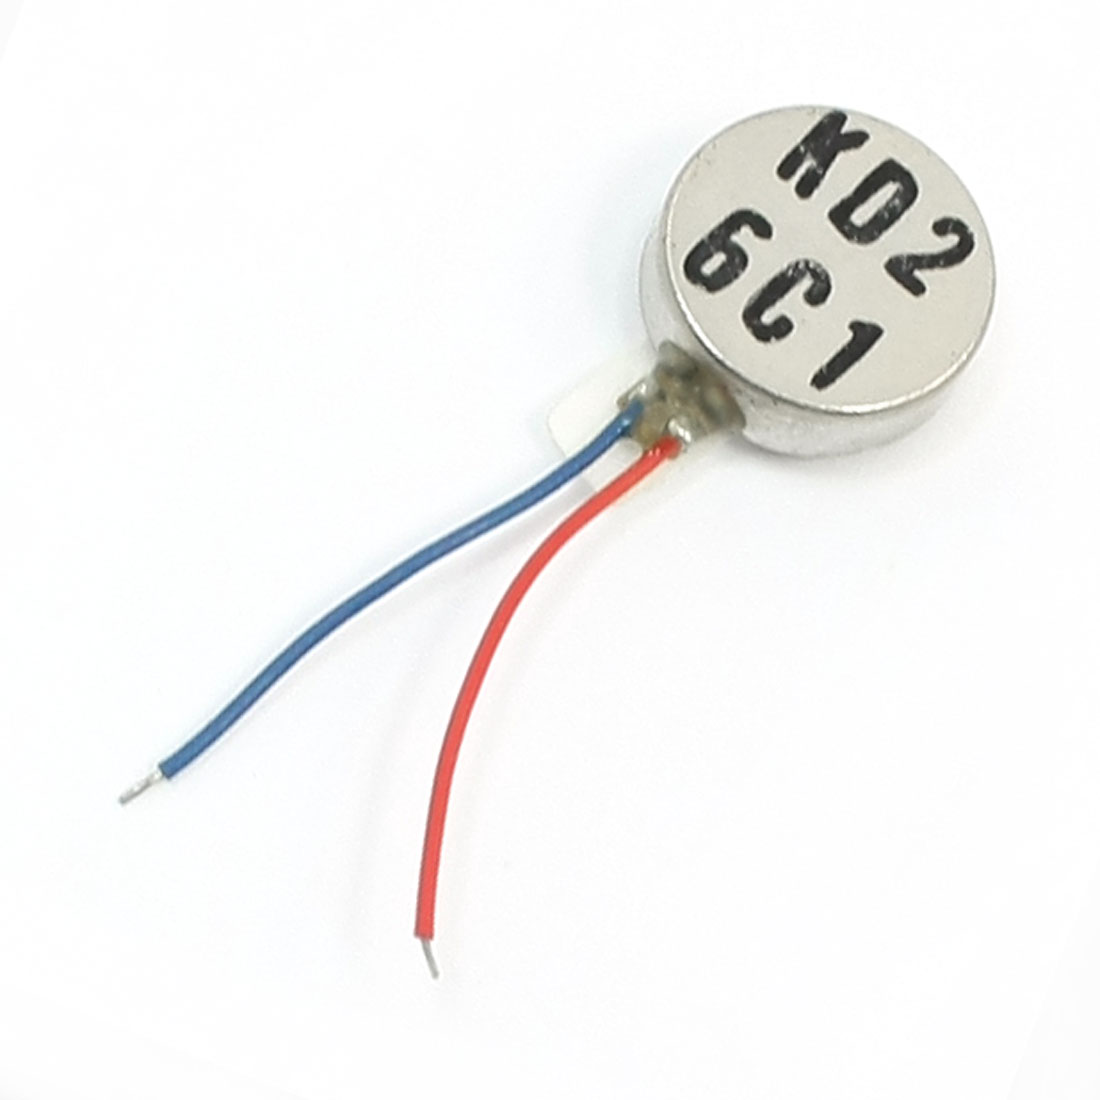 Cell-Phone-Vibrating-Coin-Type-Mini-Vibration-Motor-12000RPM-10mm-x-3-4mm